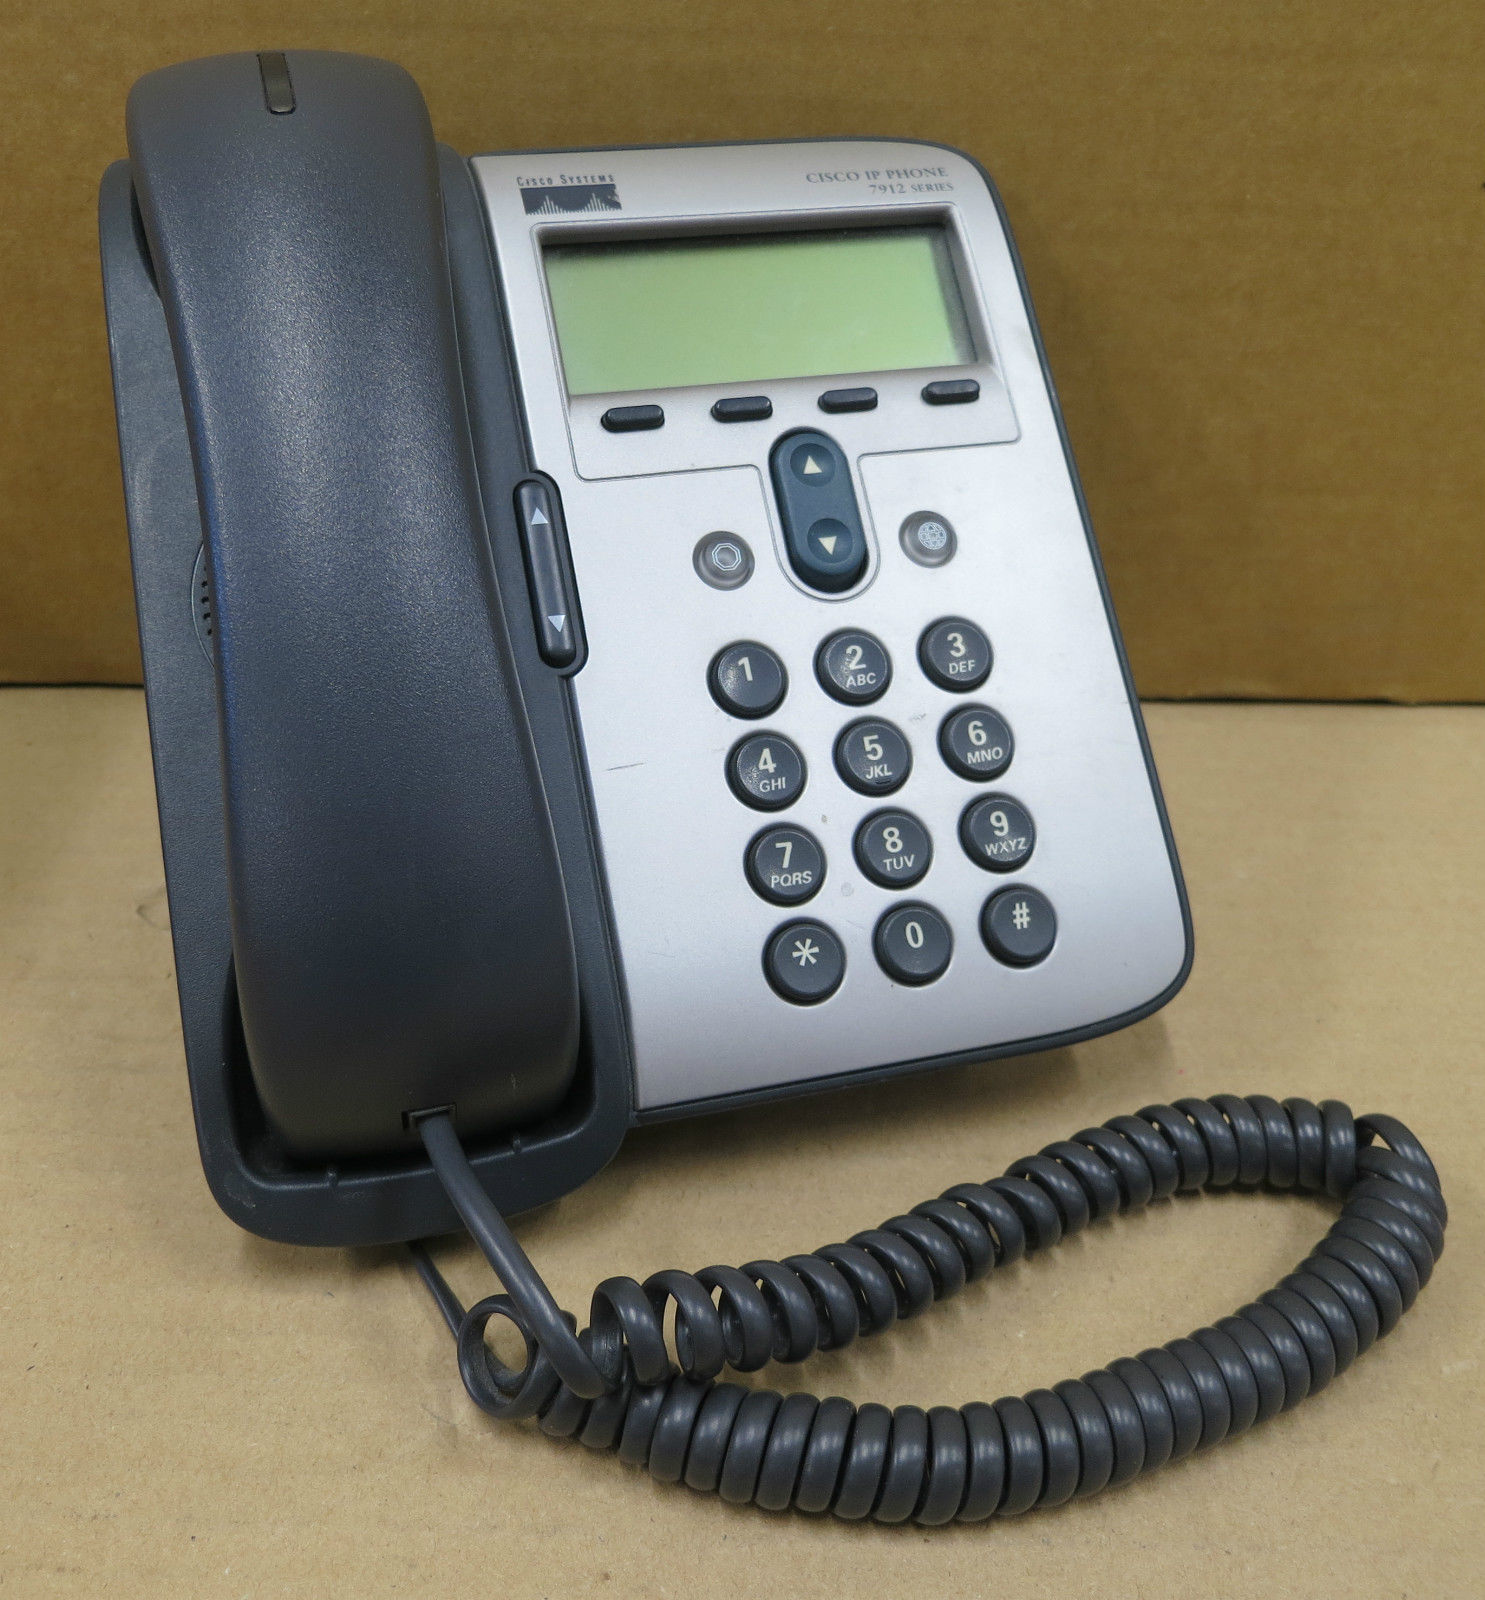 Cisco IP Phone 7912 CP-7912G-A 74-4391-02 Business Telephone & Stand